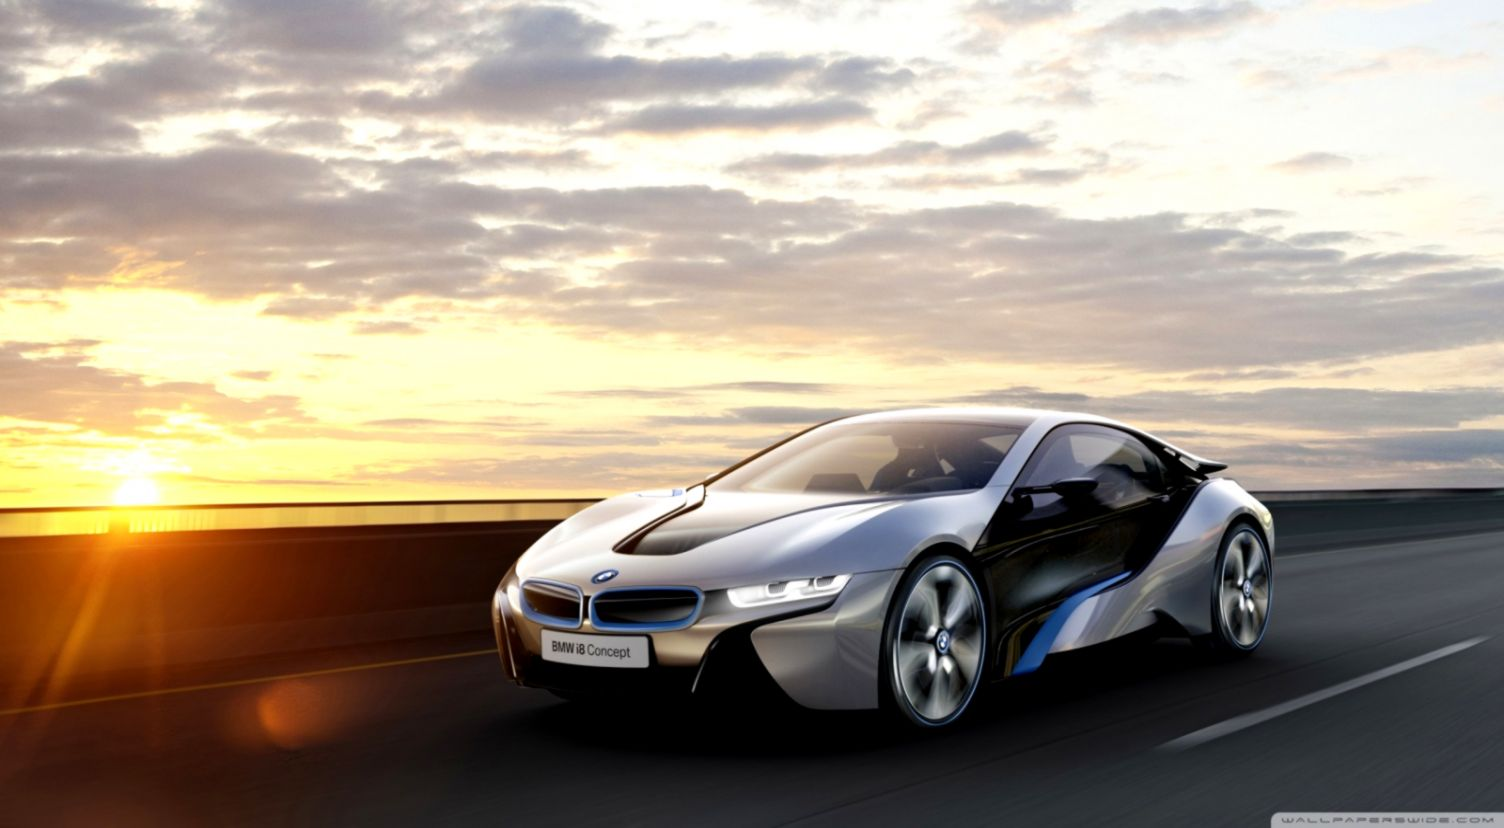 1504x828 - BMW i3 Concept Wallpapers 36